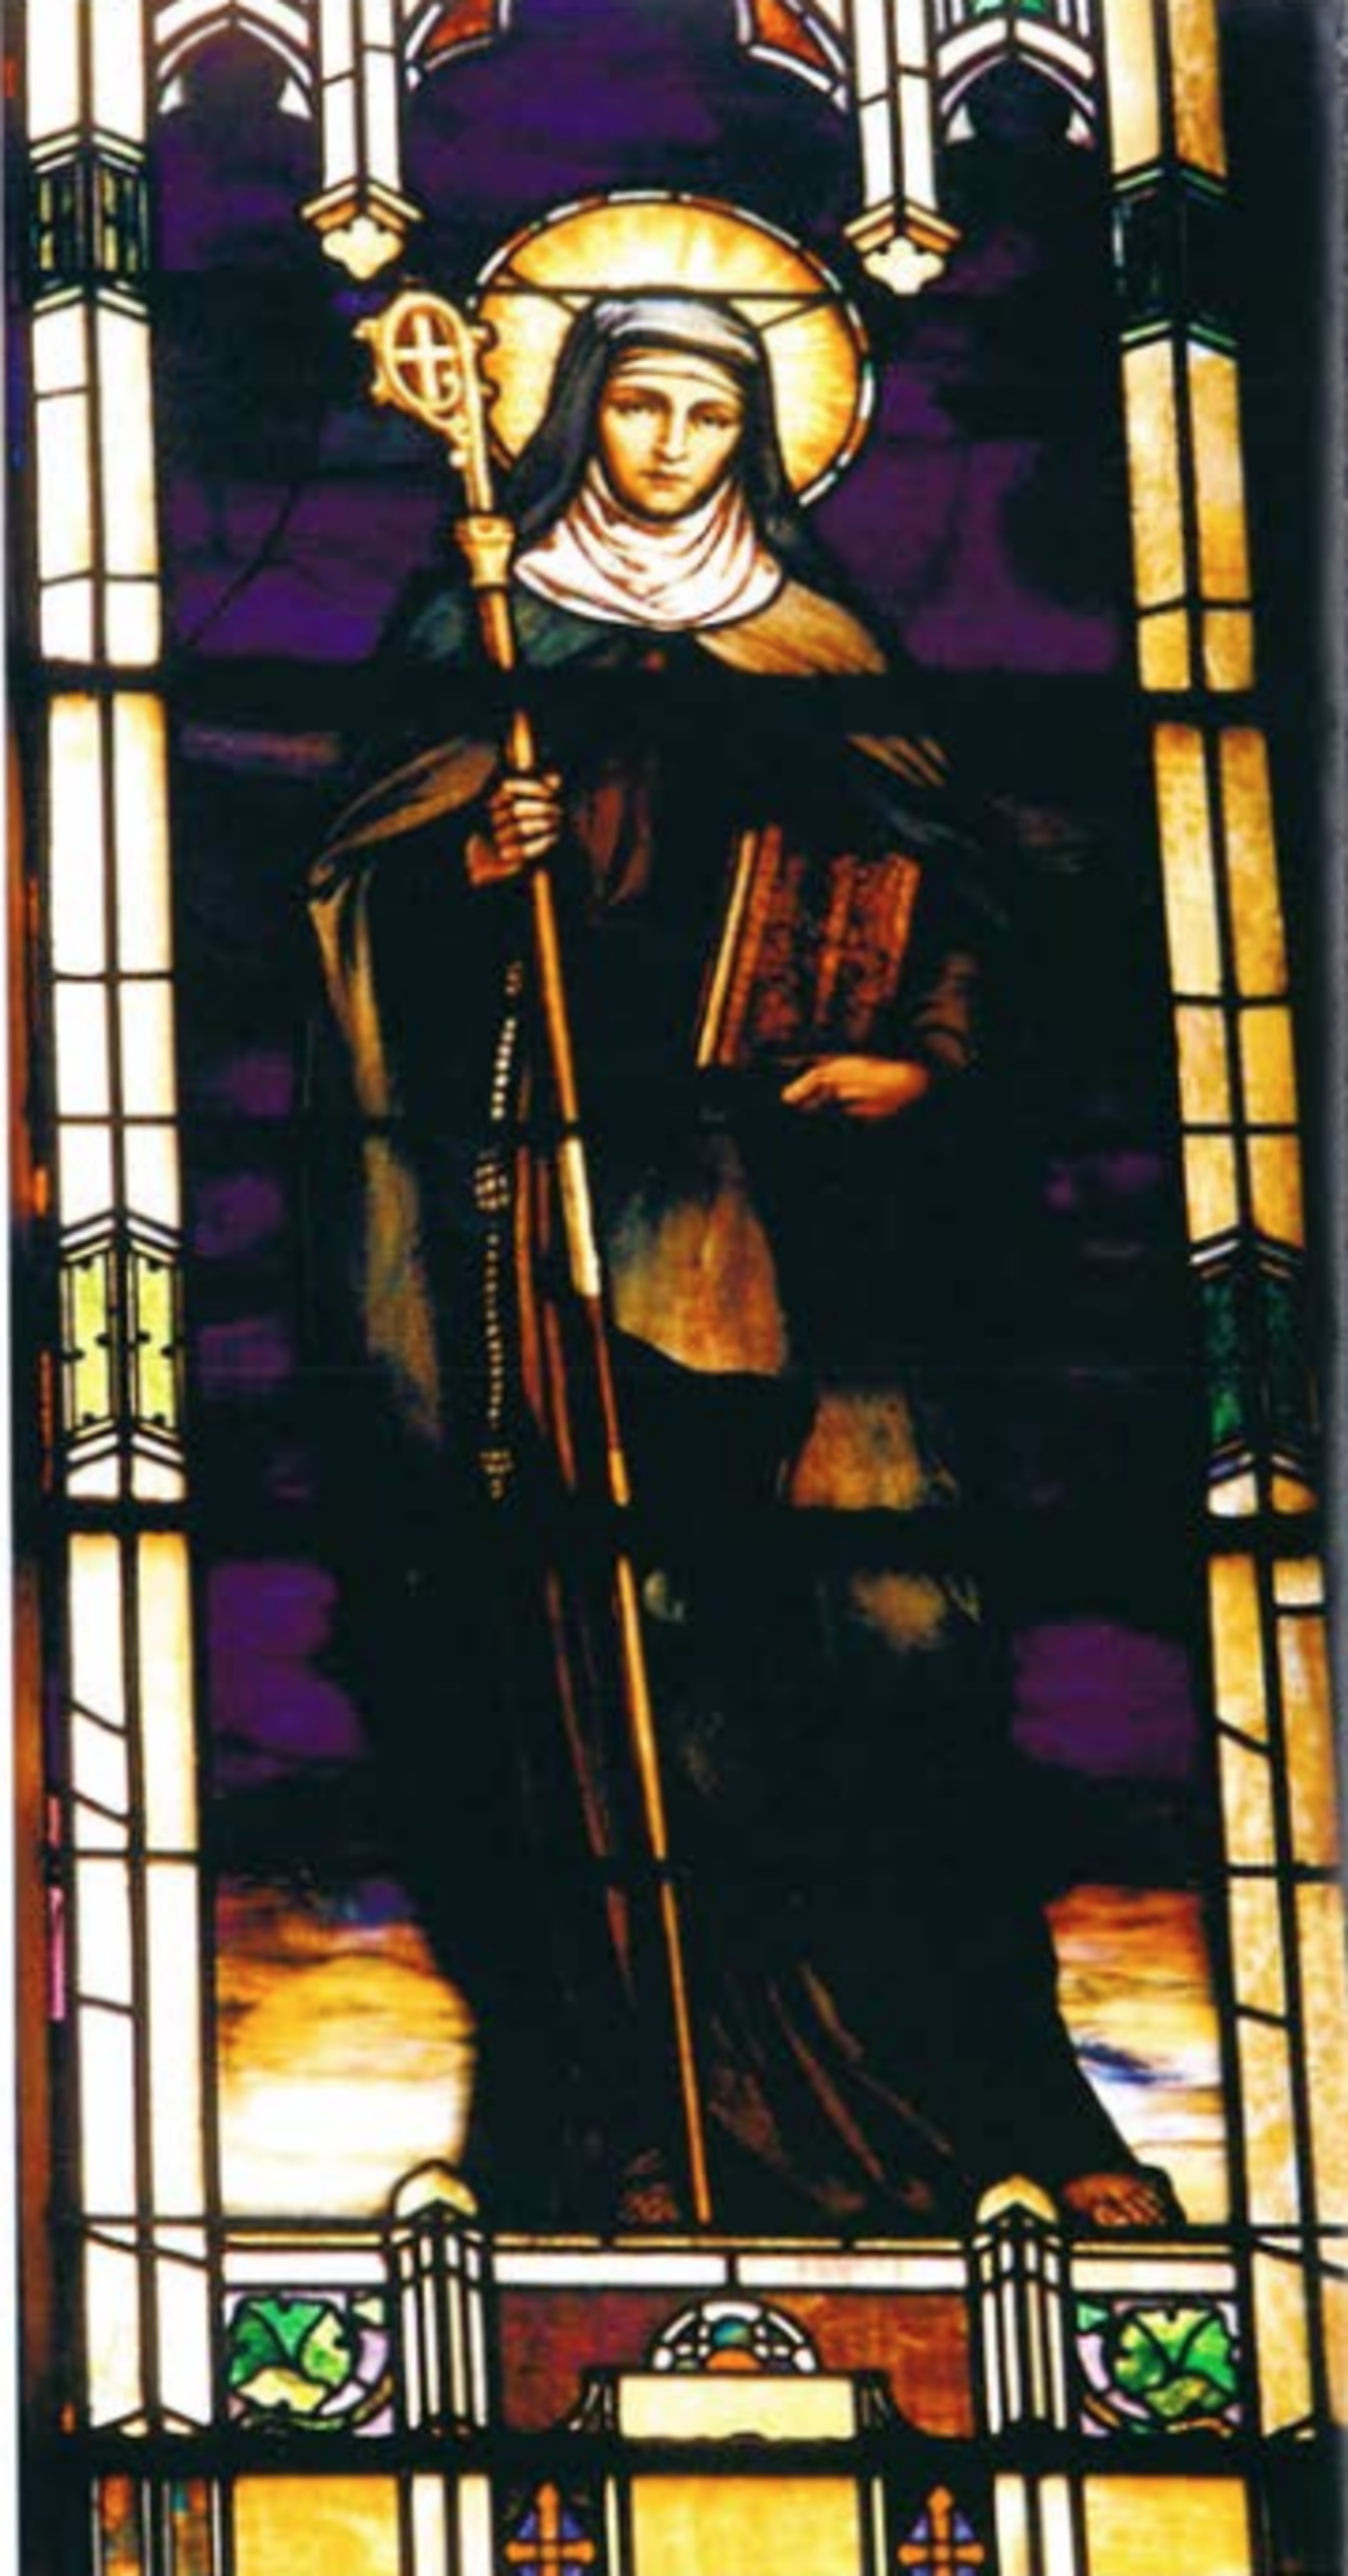 stained glass window of St. Catherine